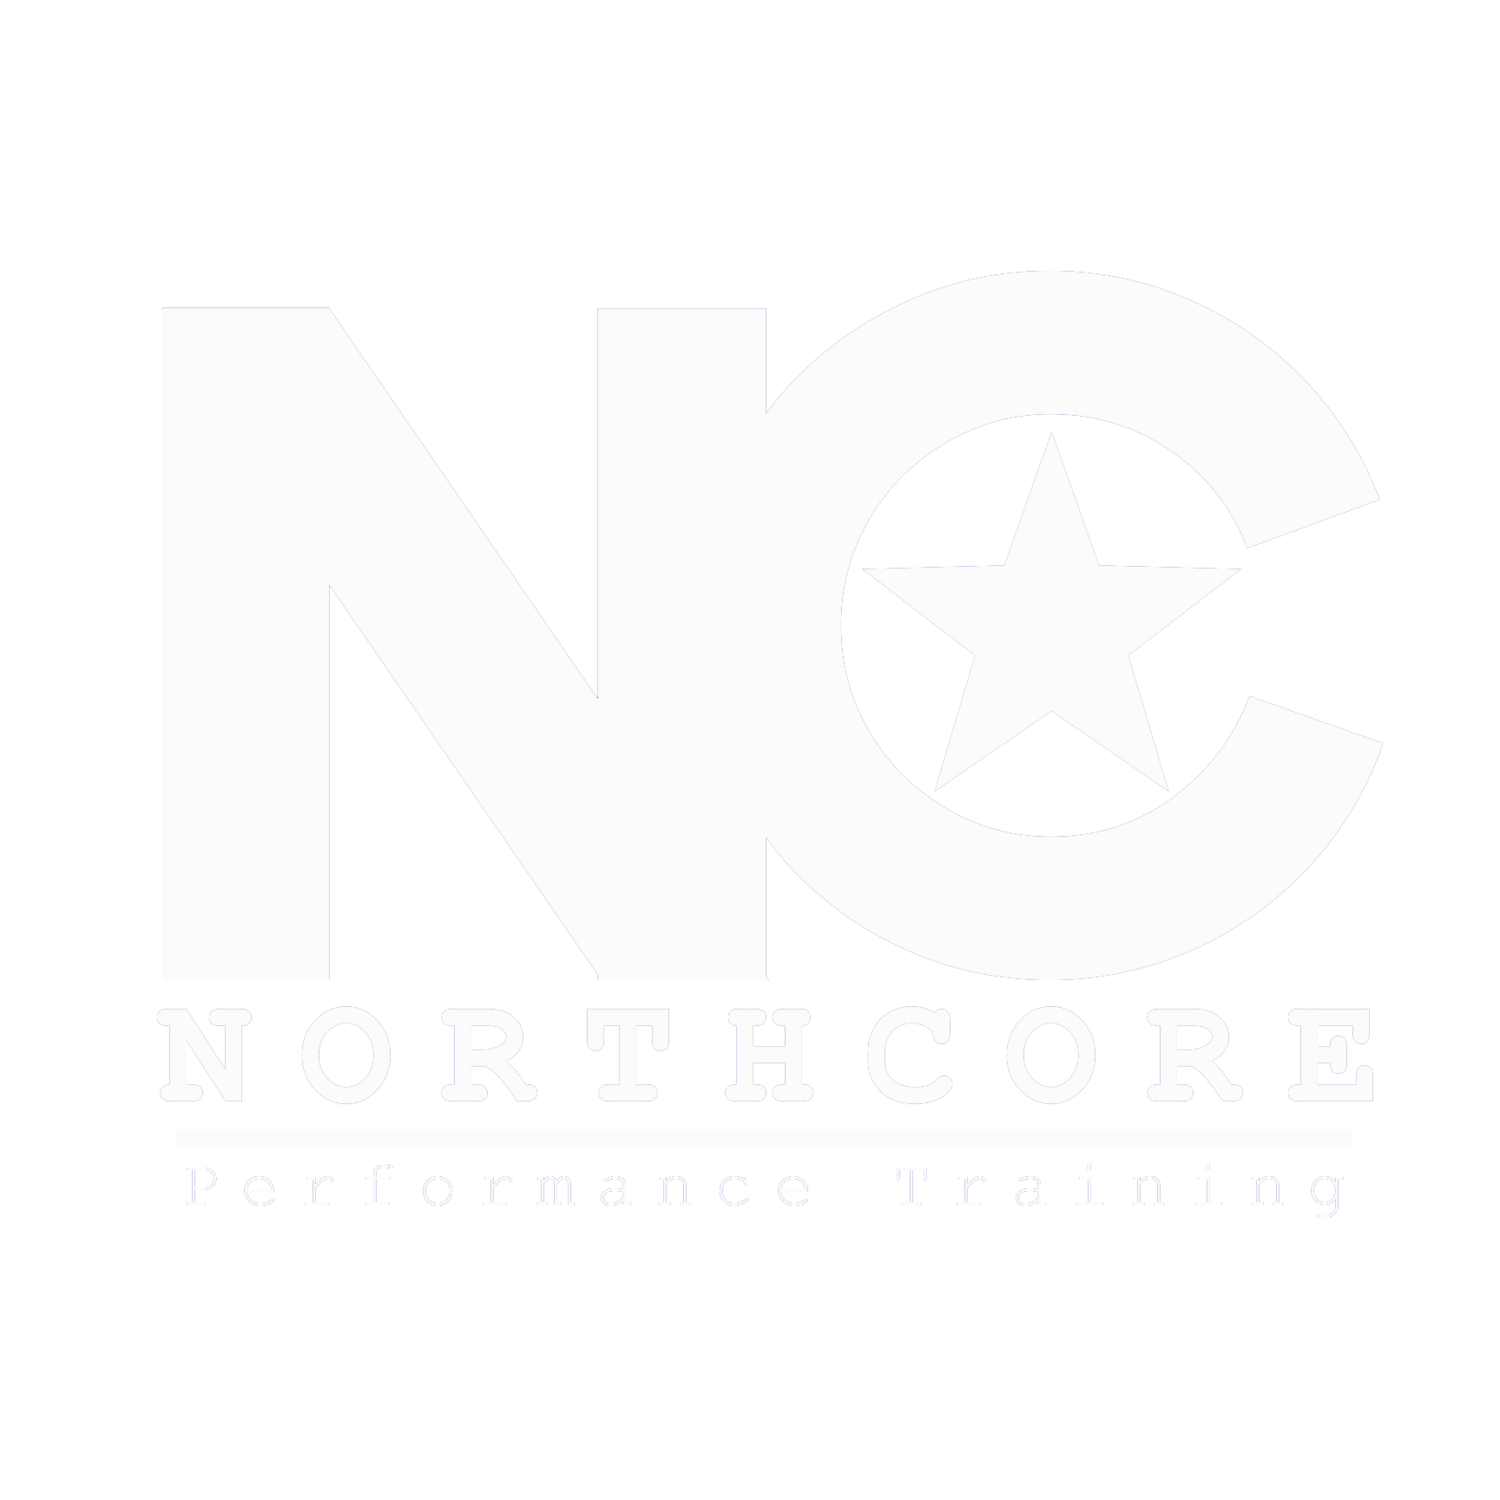 Northcore Performance Training